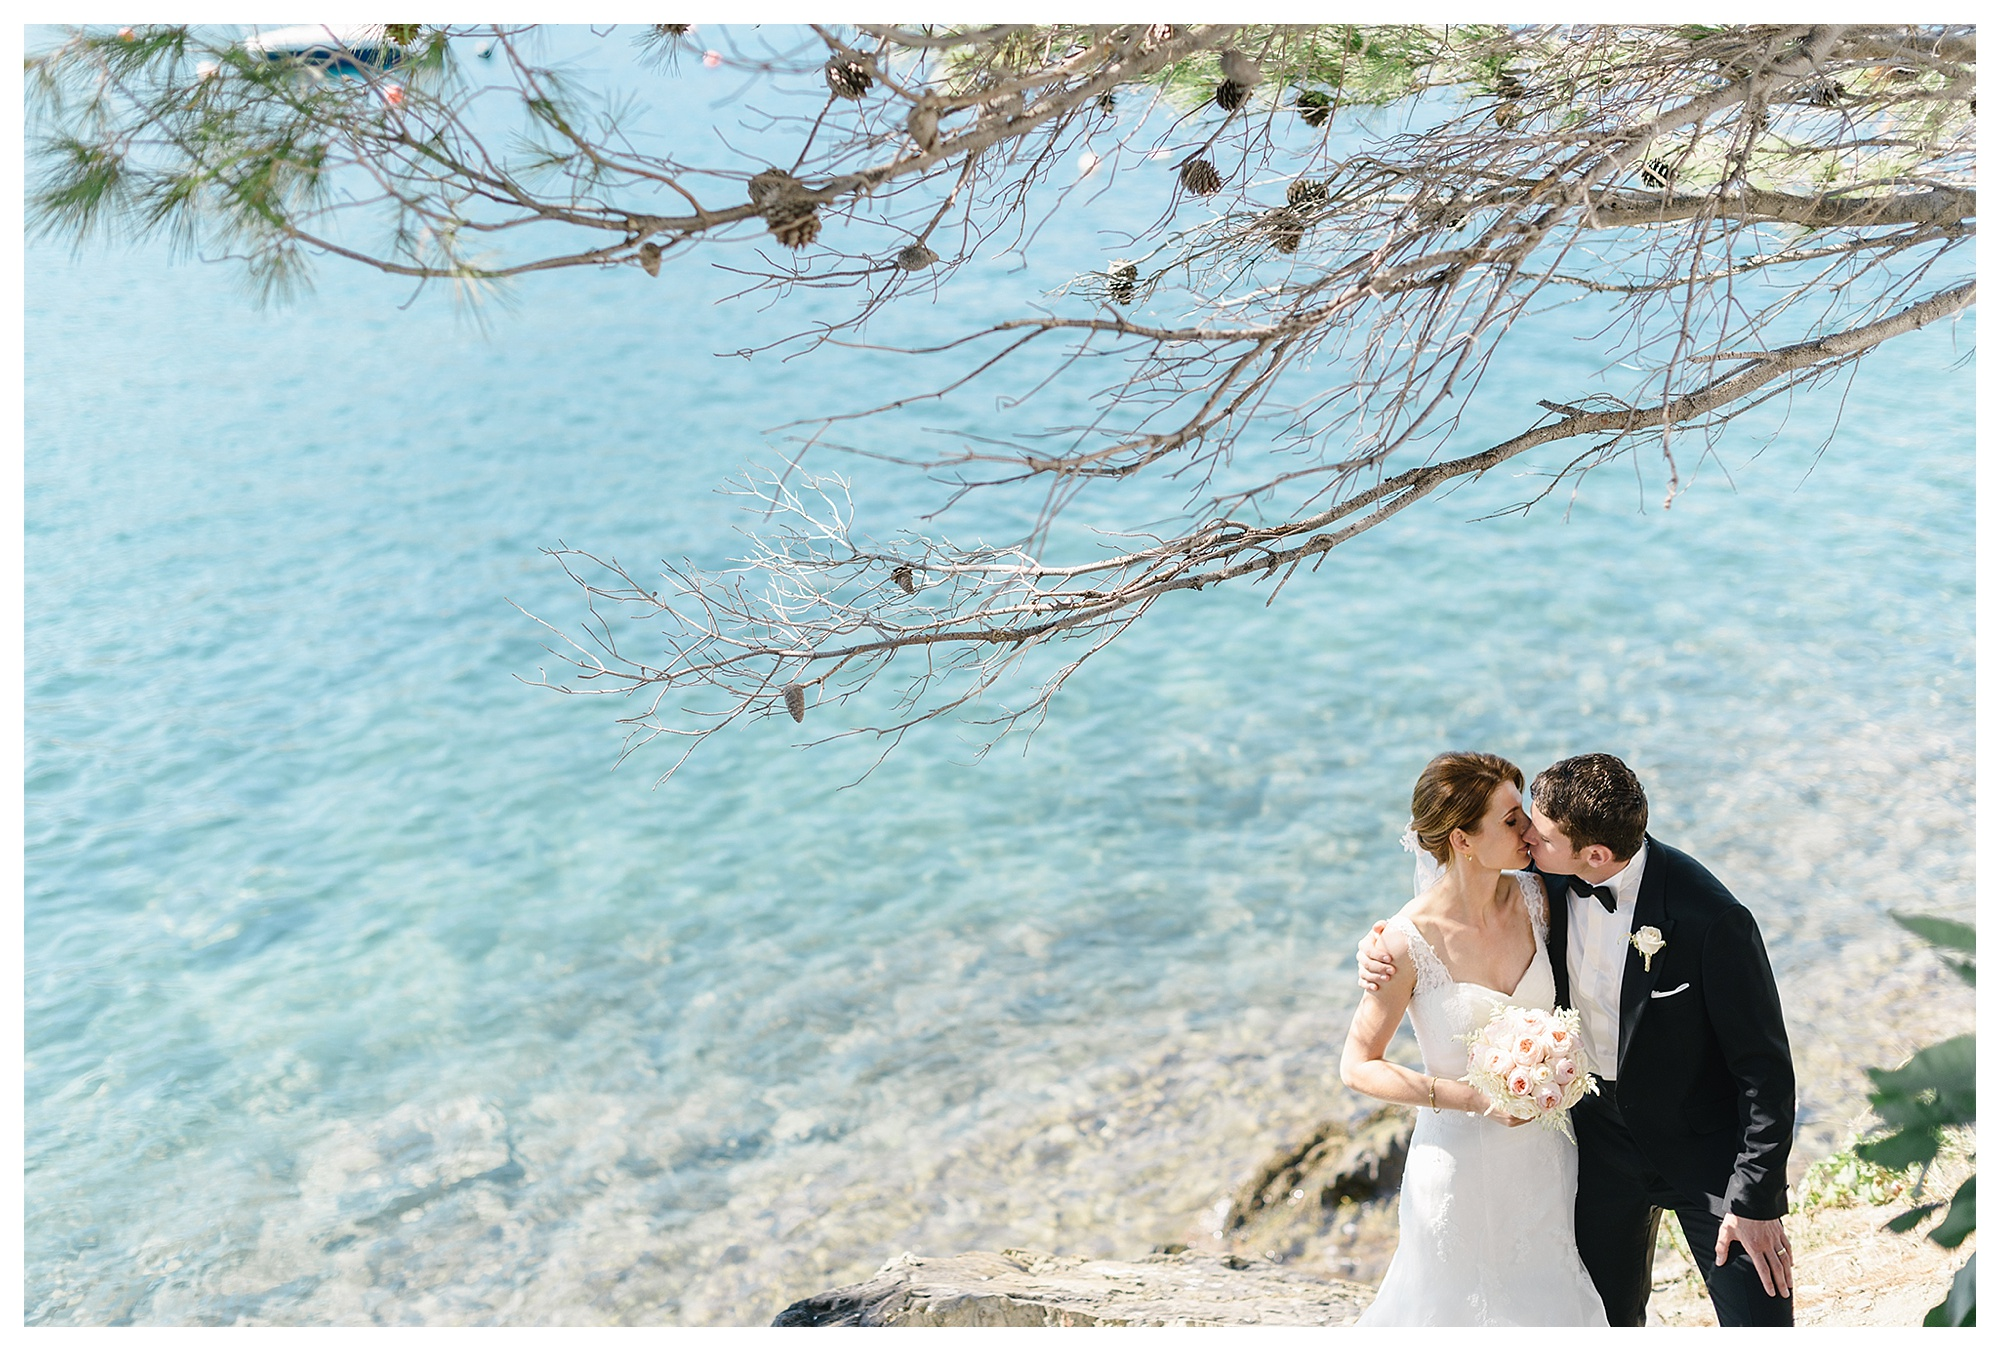 Fotograf Konstanz - Wedding Spain Cadaques Elmar Feuerbacher Photography 32 - Als Destination Wedding Fotograf in Cadaqués, Spanien  - 32 -